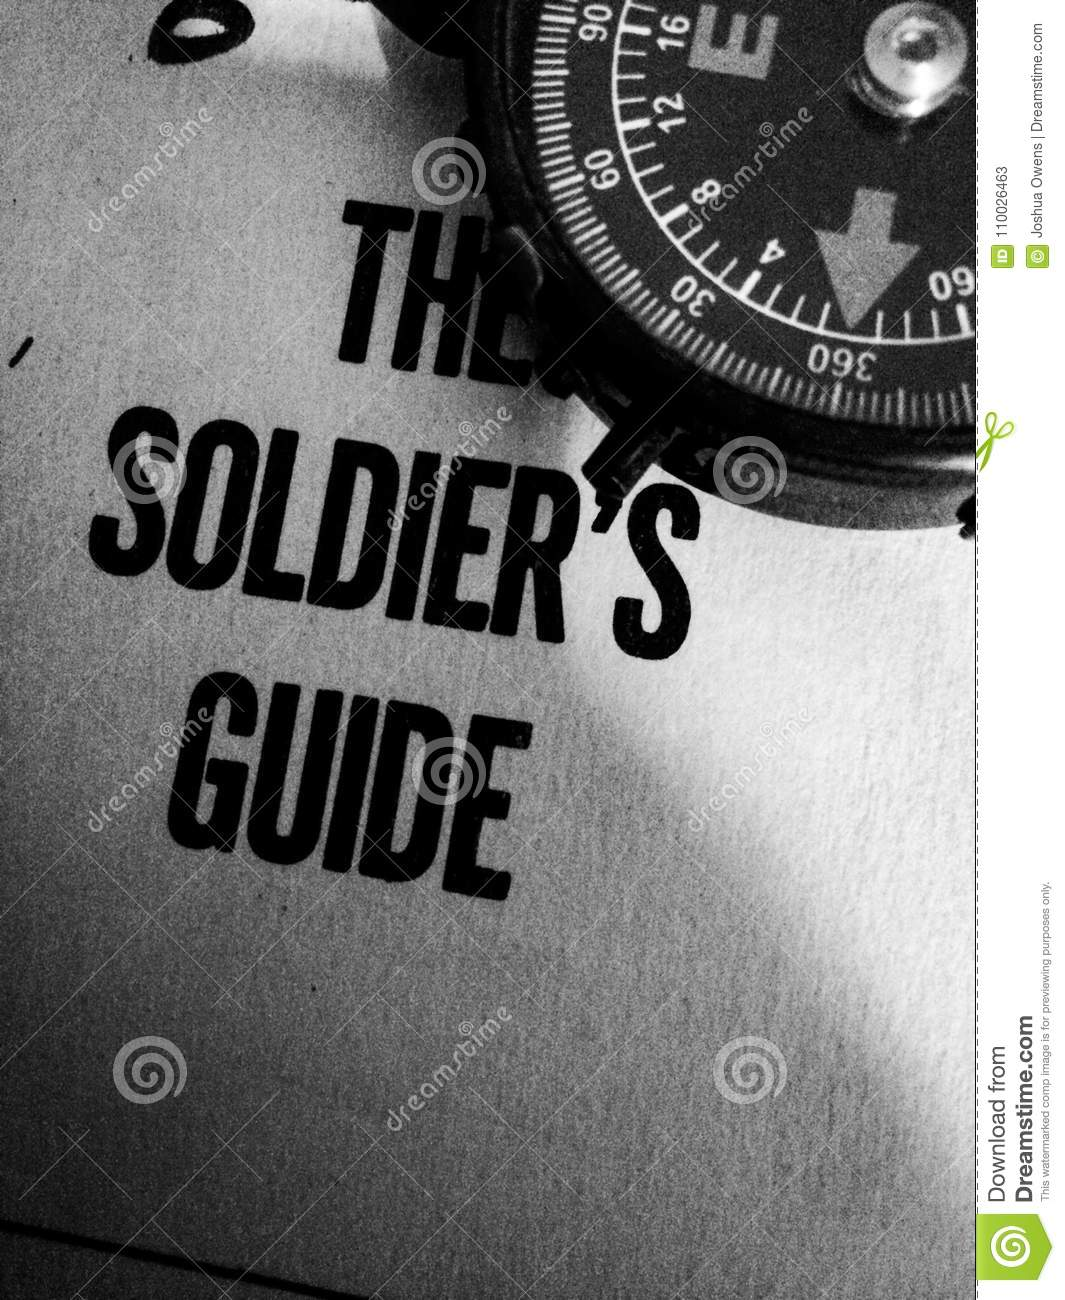 1961 soldiers guide with compass in corner